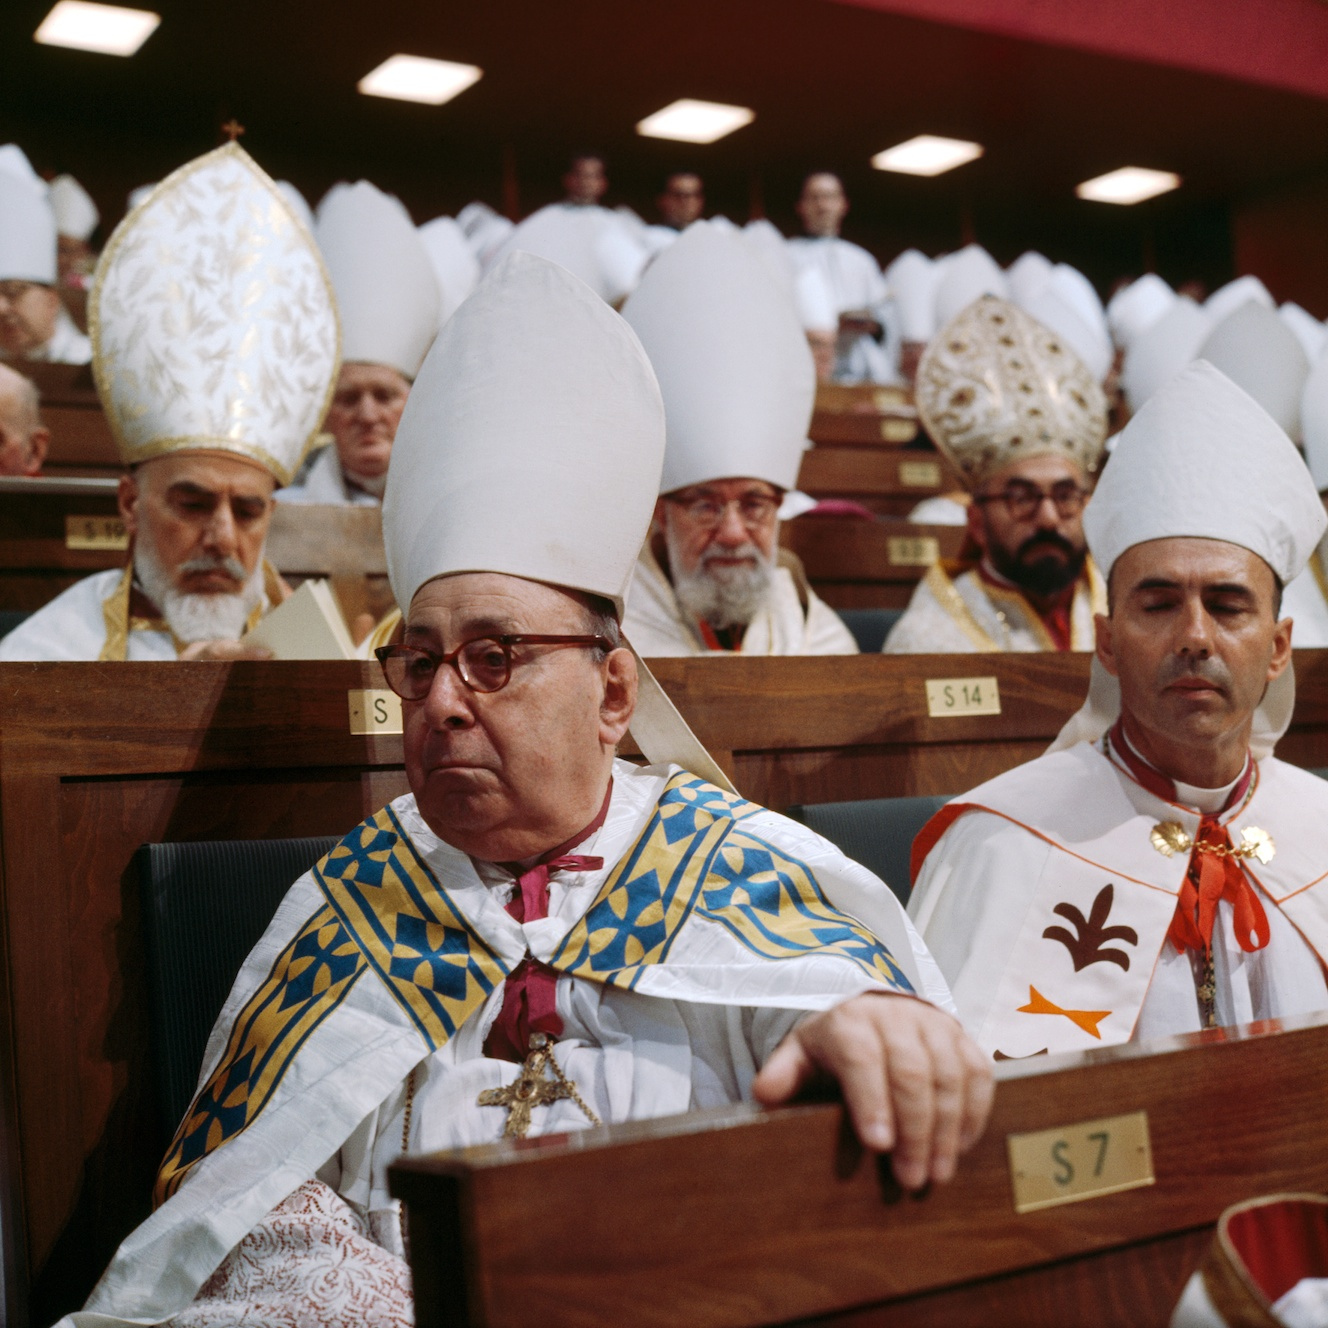 Second_Vatican_Council_by_Lothar_Wolleh_